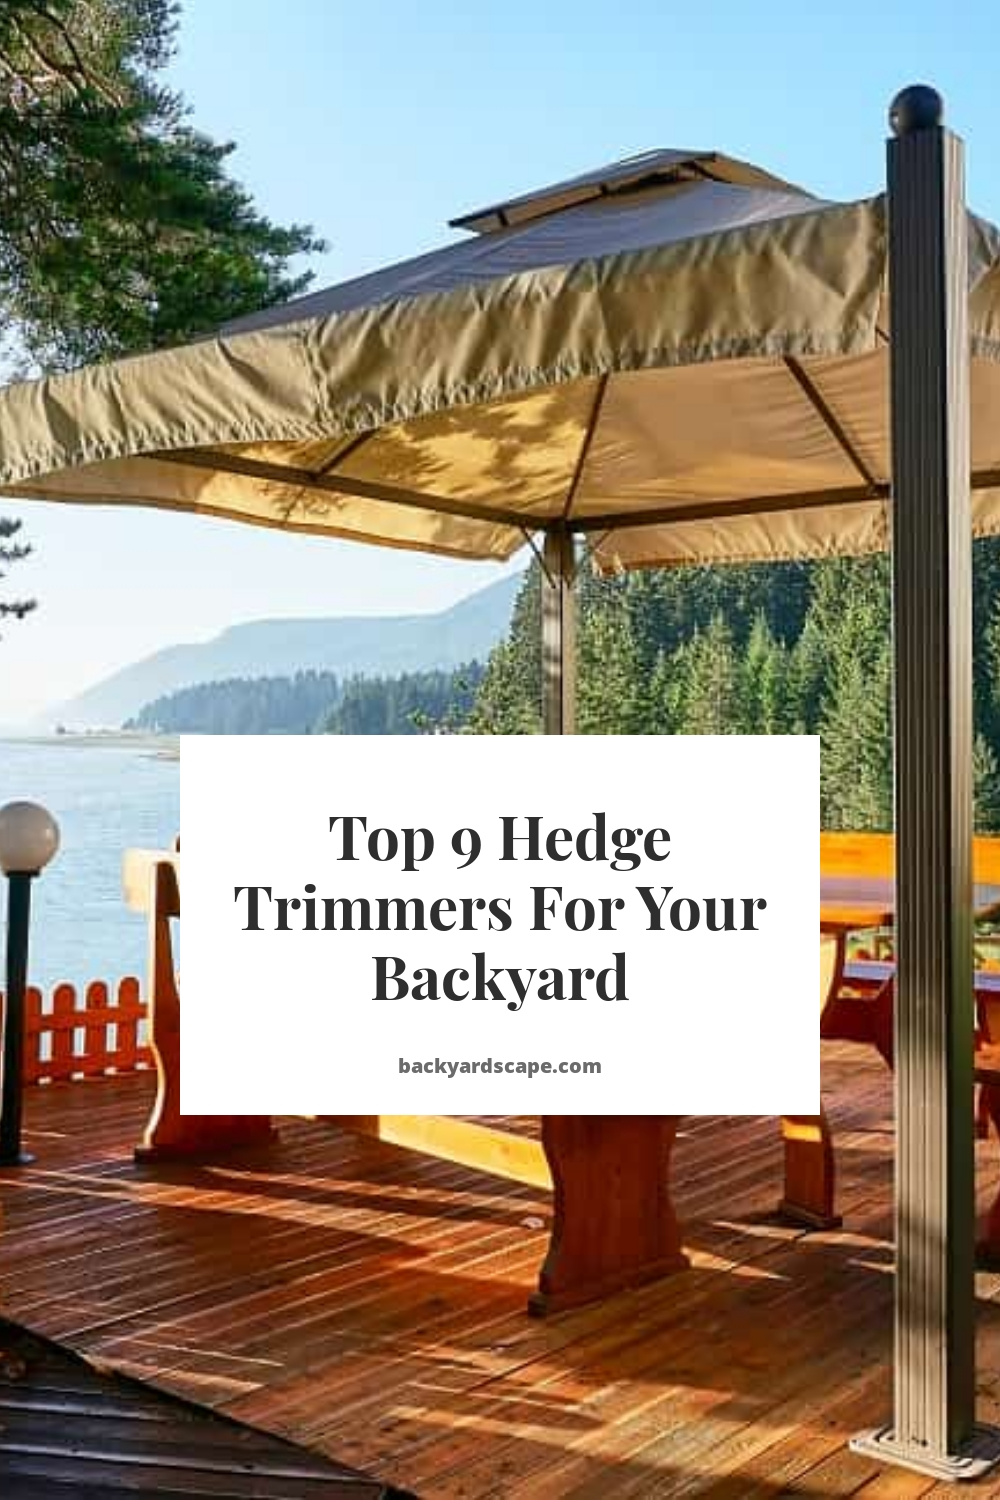 Top 9 Hedge Trimmers For Your Backyard